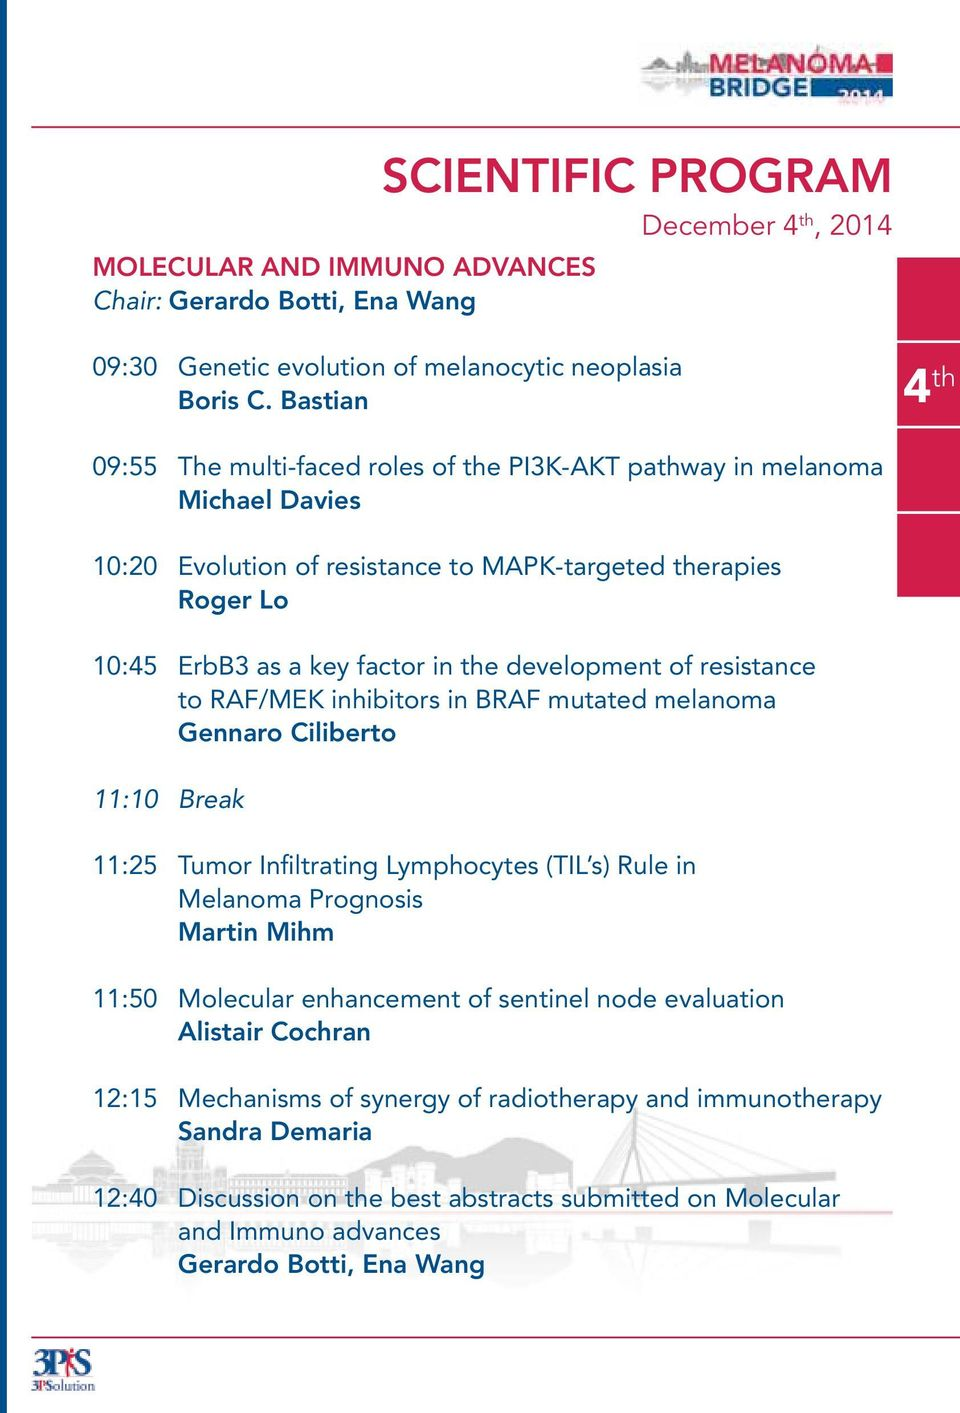 development of resistance to RAF/MEK inhibitors in BRAF mutated melanoma Gennaro Ciliberto 11:10 Break 11:25 Tumor Infiltrating Lymphocytes (TIL s) Rule in Melanoma Prognosis Martin Mihm 11:50